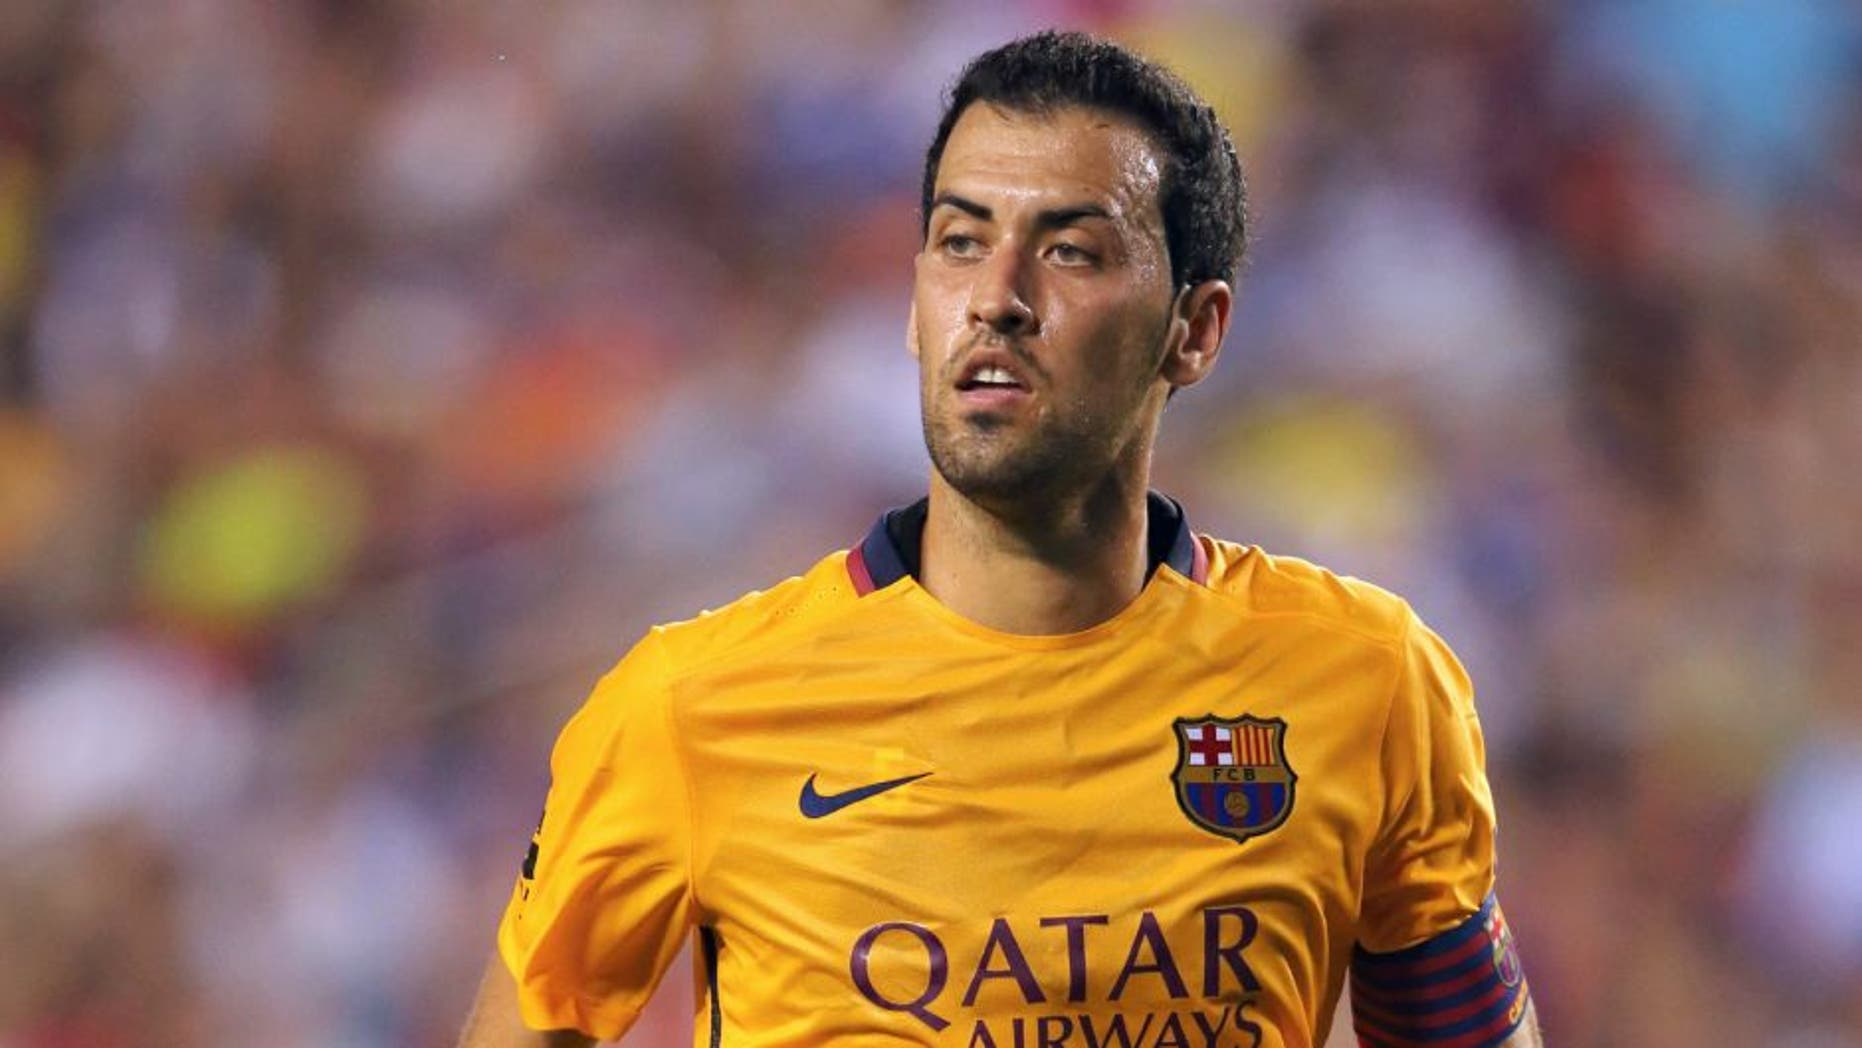 LANDOVER, UNITED STATES - JULY 28: Sergio Busquets of FC Barcelona during the International Champions Cup match between Barcelona and Chelsea at FedExField on July 28, 2015 in Landover, Maryland. (Photo by Matthew Ashton - AMA/Getty Images)